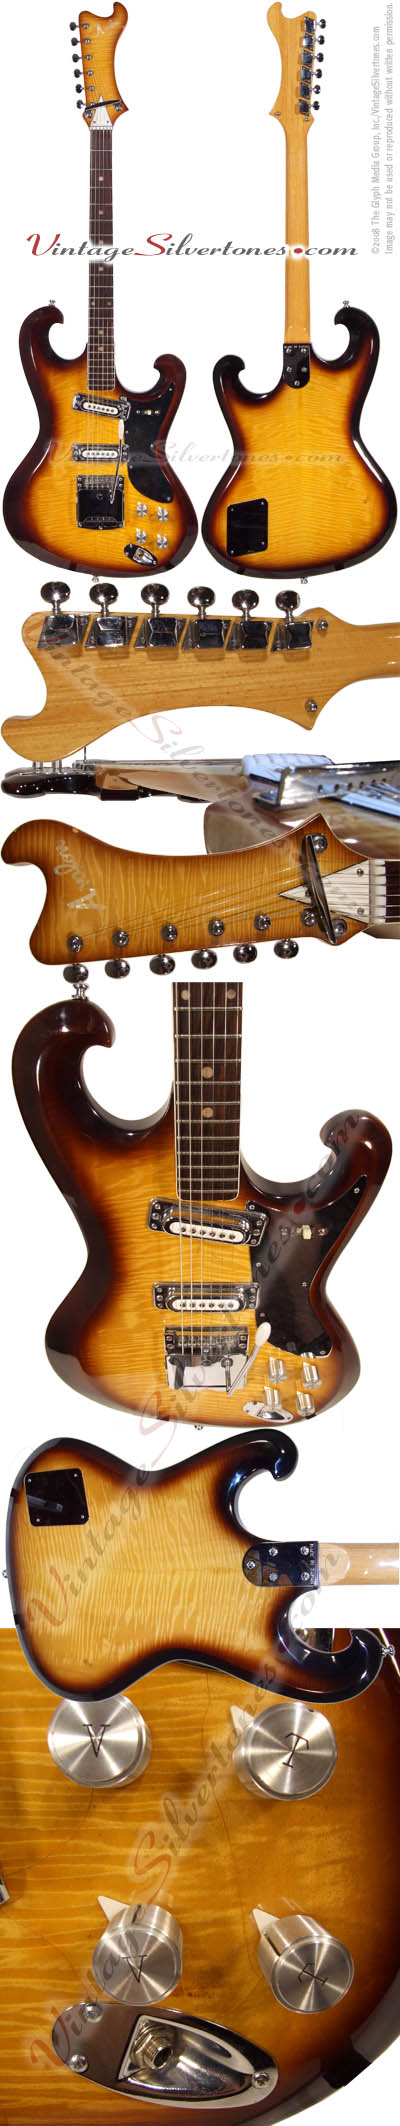 Avalon AV-27, 2 pickup electric guitar solid body tobaccoburst, made in Japan - The Shaggs model circa 1968